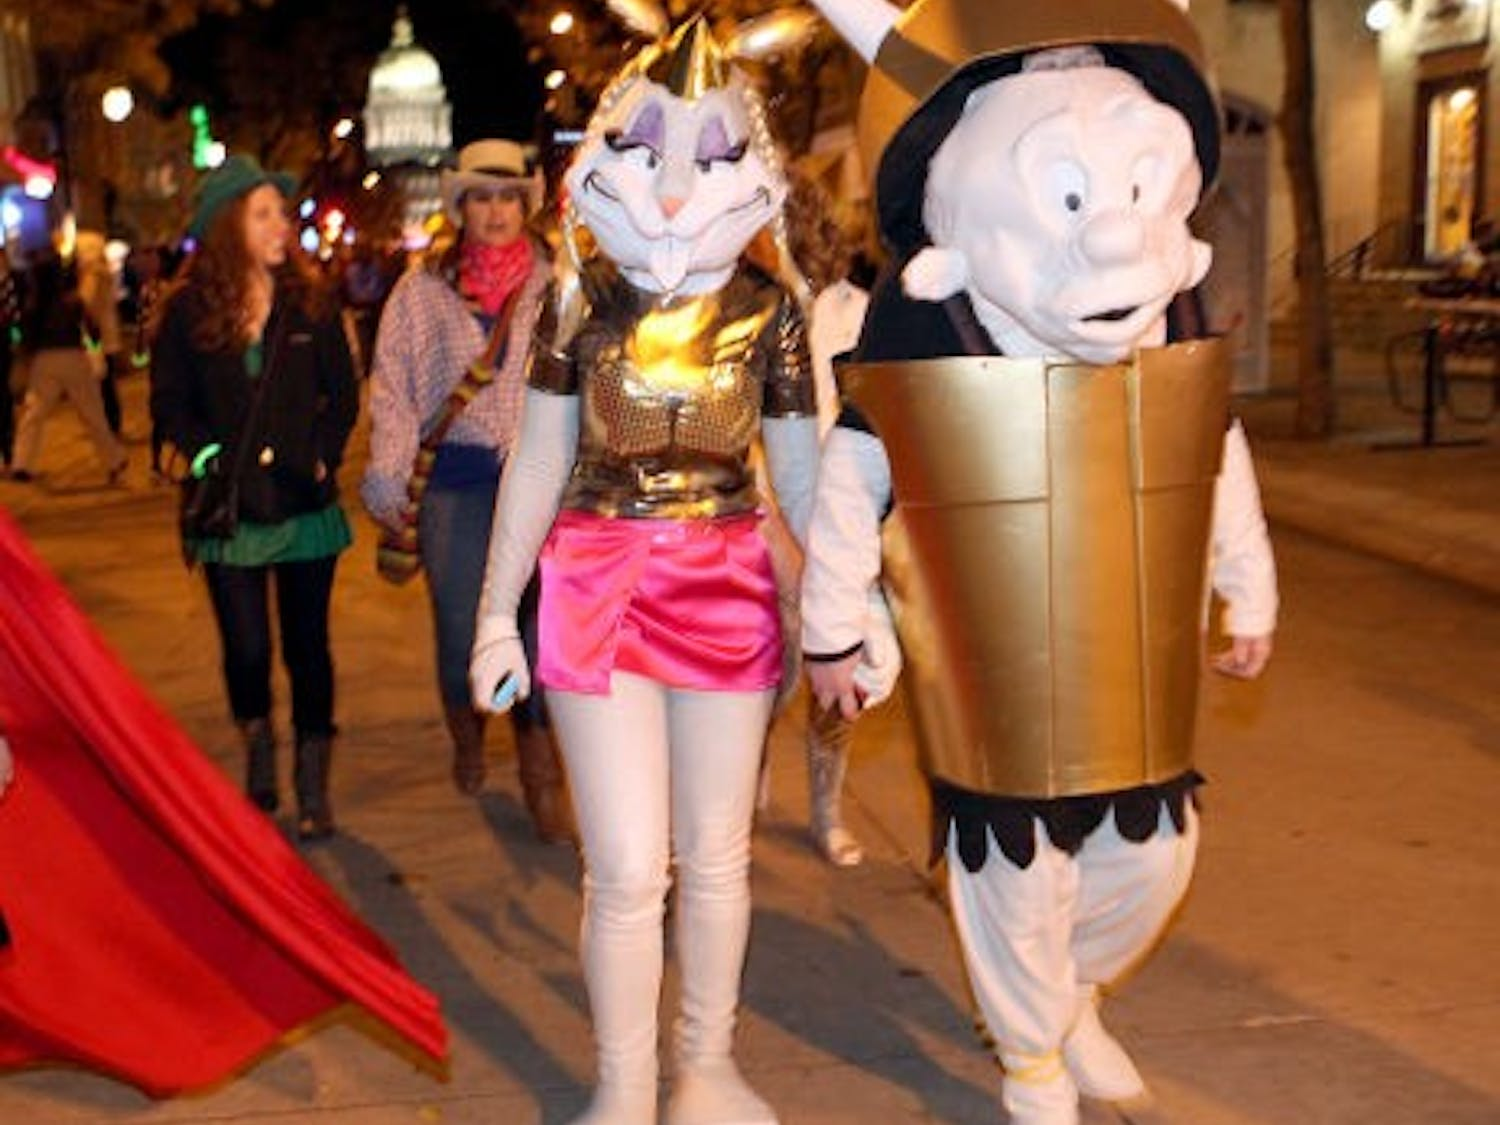 State Street's annual Halloween party drew an estimated 35,000-plus revelers, according to Madison police. Here's a look at some of them from the lenses of photographers Amber Arnold of the Wisconsin State Journal and Mike DeVries of The Capital Times.